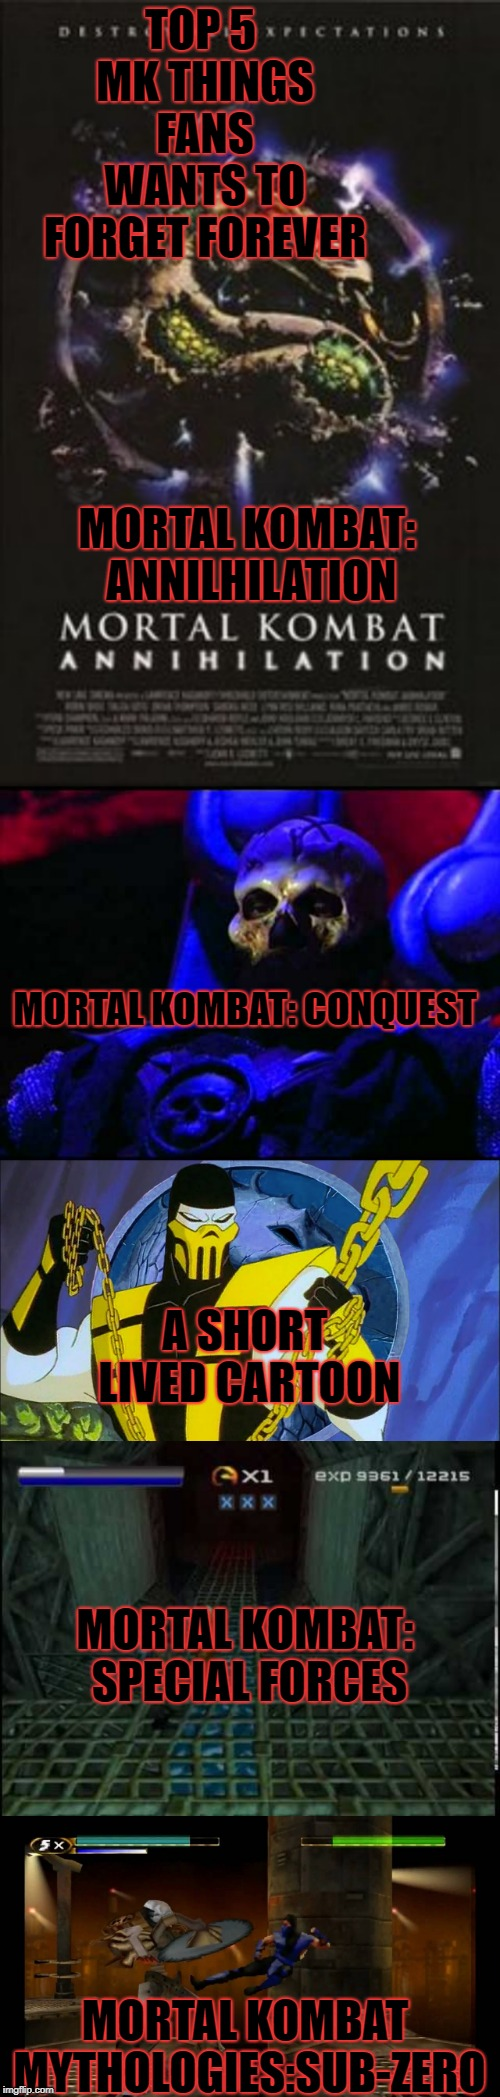 TOP 5 MK THINGS FANS WANTS TO FORGET FOREVER MORTAL KOMBAT MYTHOLOGIES:SUB-ZERO MORTAL KOMBAT: SPECIAL FORCES MORTAL KOMBAT: CONQUEST MORTAL | image tagged in mortal kombat,movie,video games,shows,terrible | made w/ Imgflip meme maker